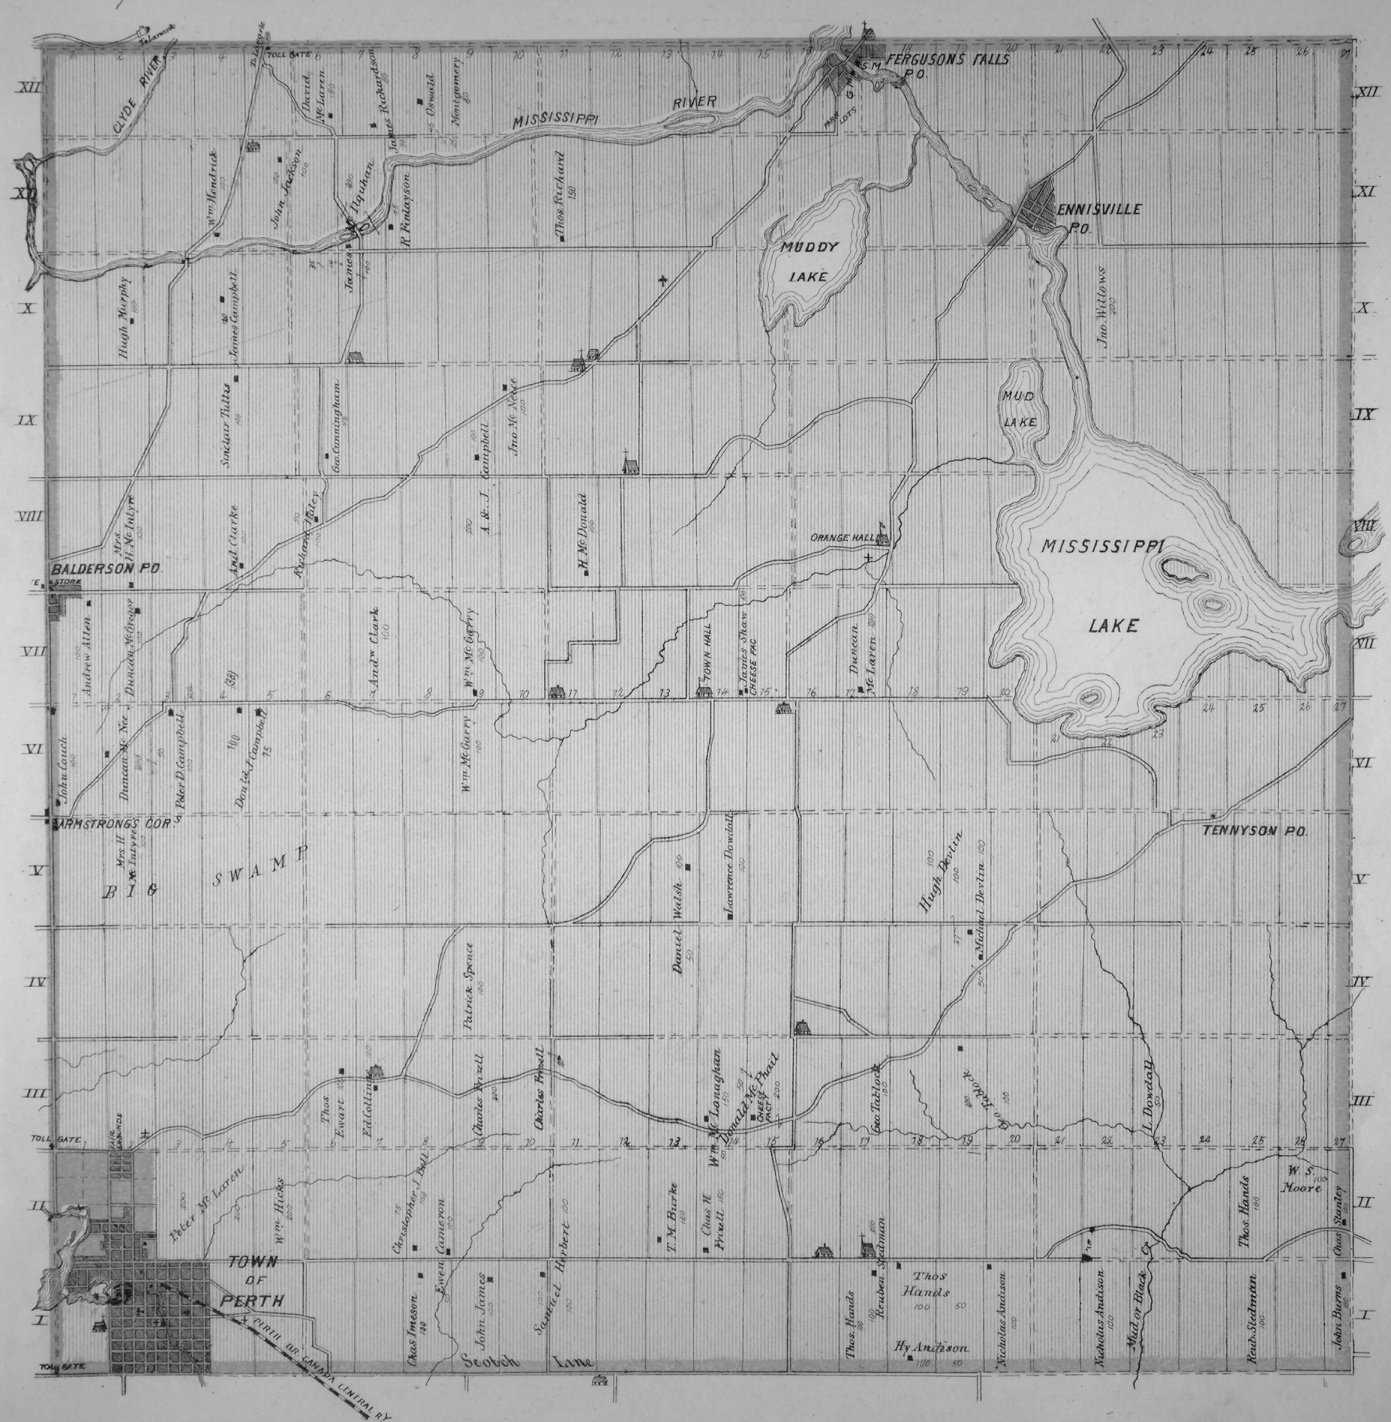 Map of Drummond Township, Lanark County, Ontario, Canada, in 1879